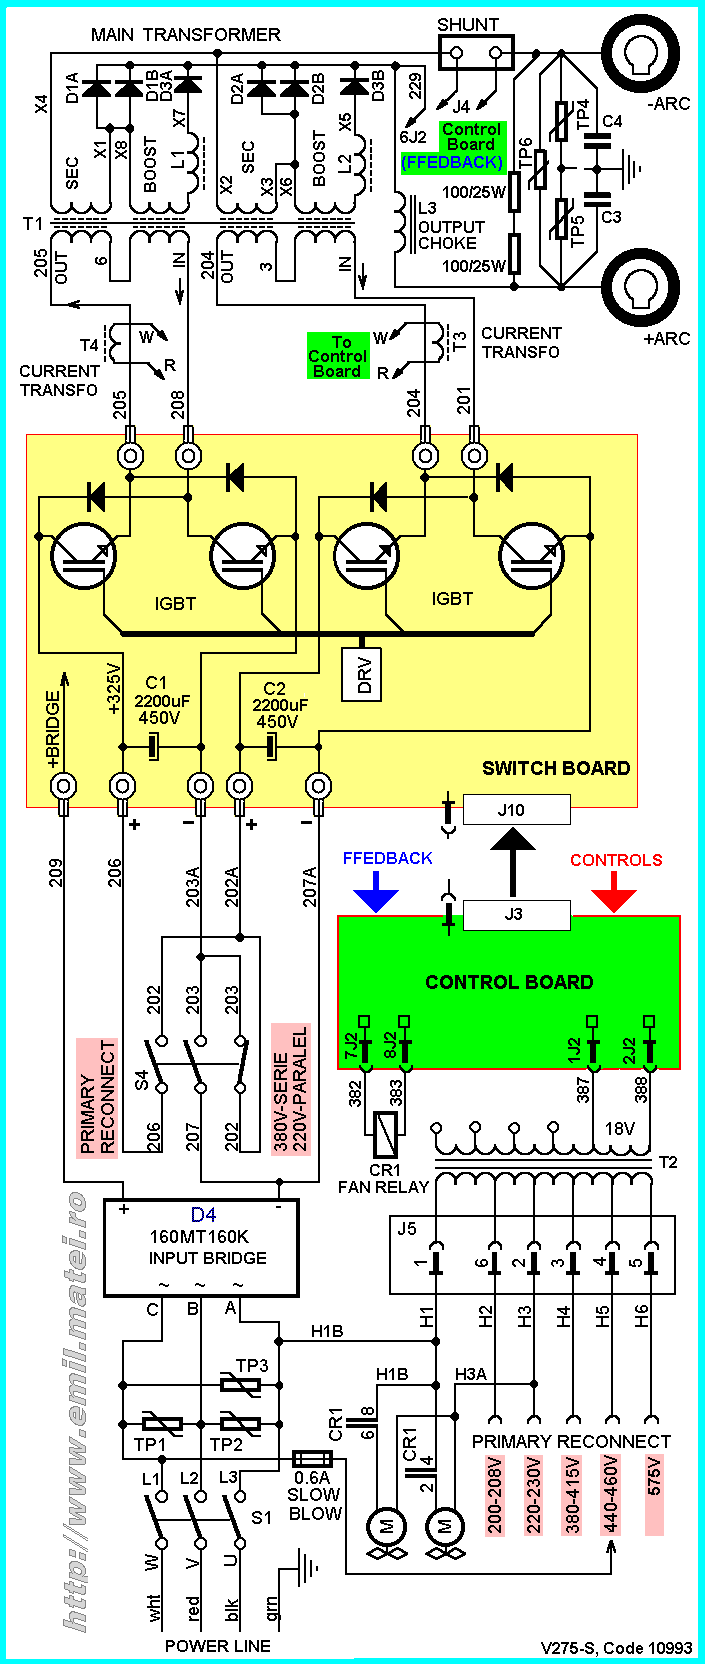 medium resolution of emilmatei igbt switch board schematic diagram of welding inverter inverter welding machine circuit diagram circuit diagram inverter welding machine